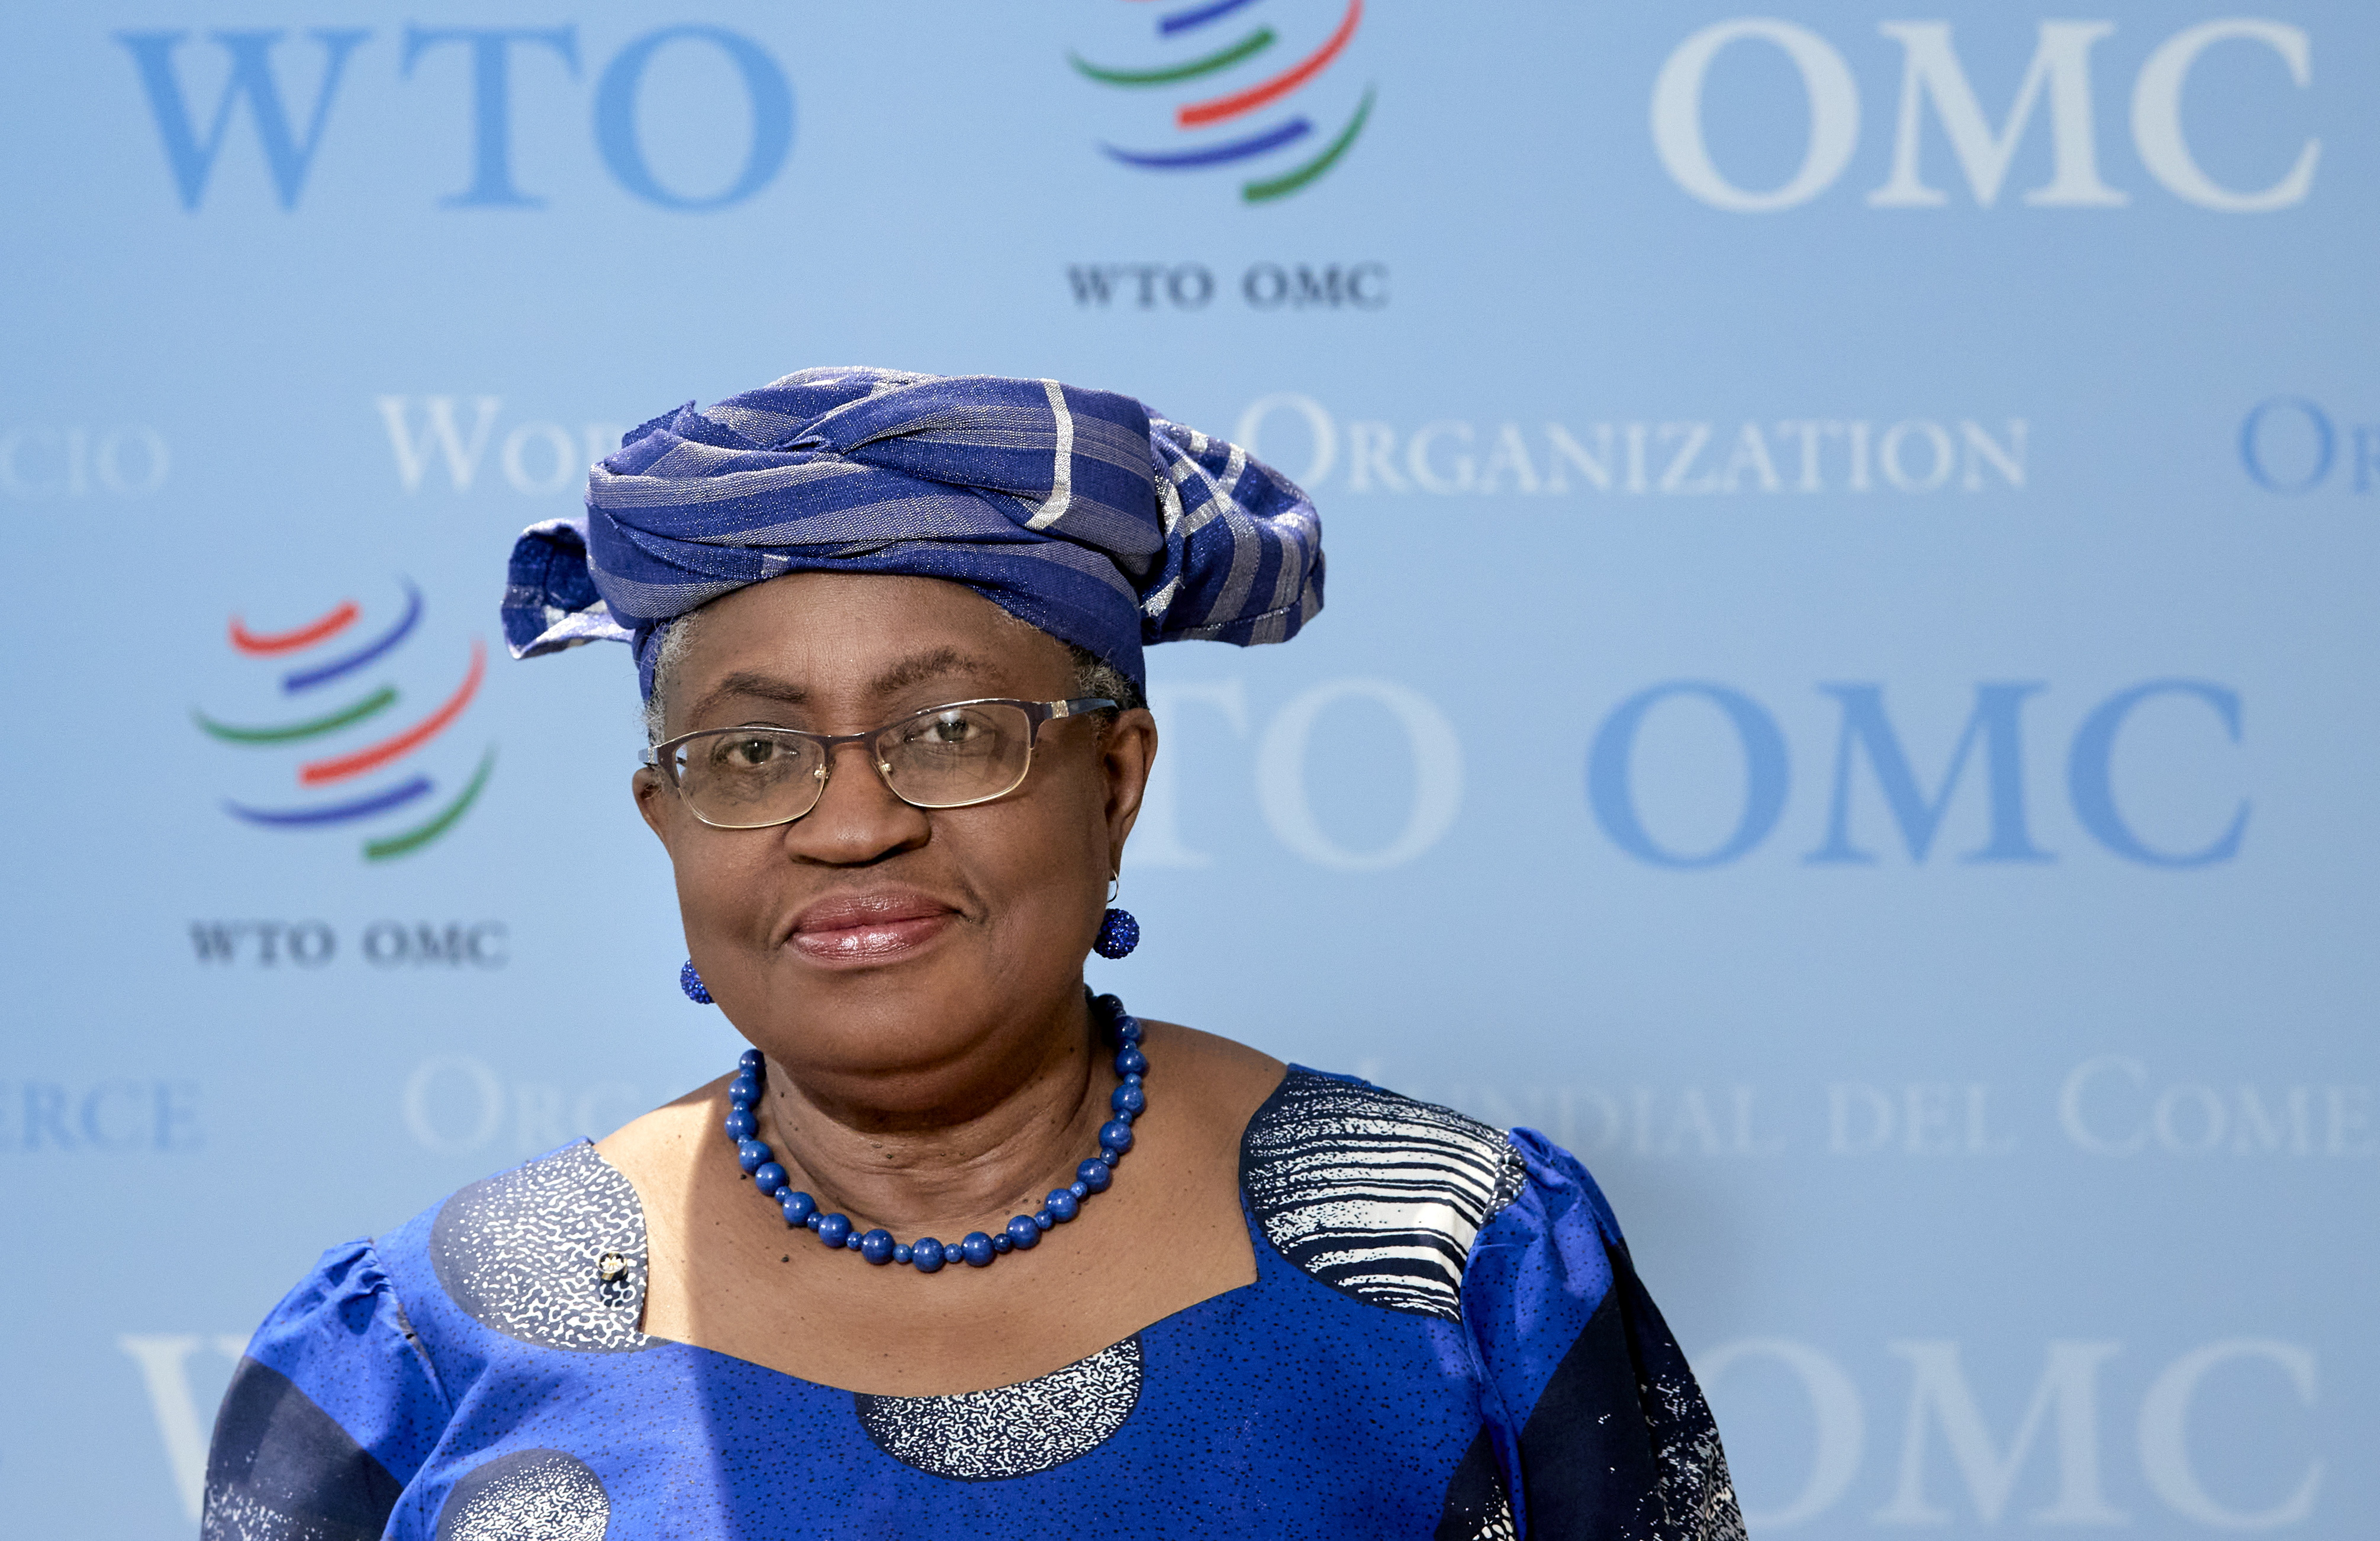 World Trade Organisation (WTO) Director-General Ngozi Okonjo-Iweala poses before an interview with Reuters at the WTO headquarters in Geneva, Switzerland, April 12, 2021. REUTERS/Denis Balibouse